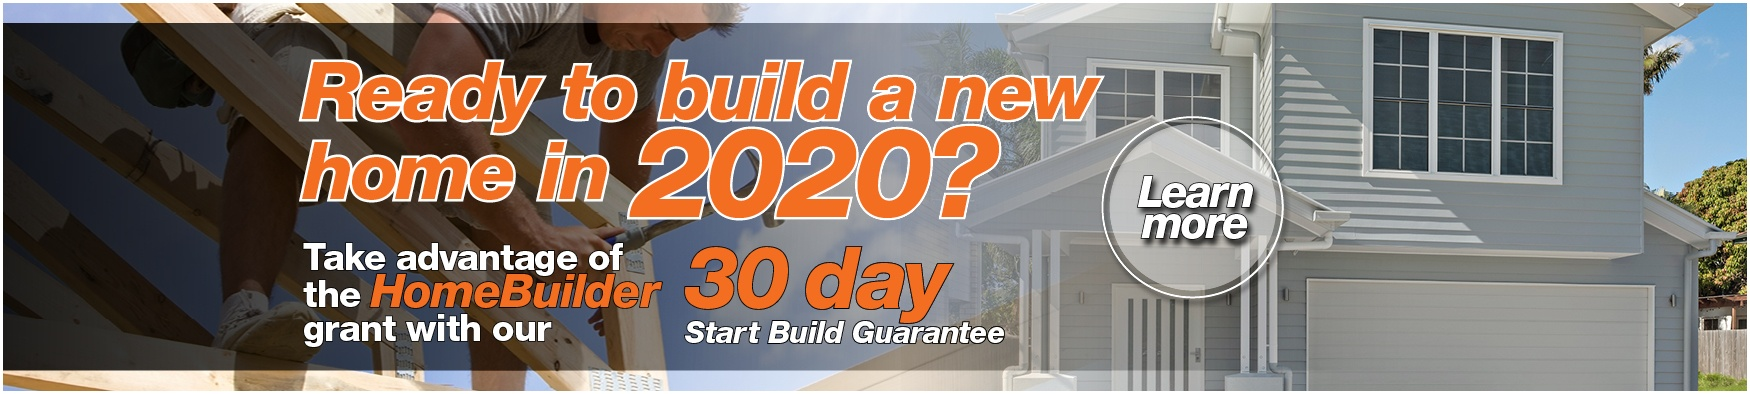 Ready to build a new home in 2020